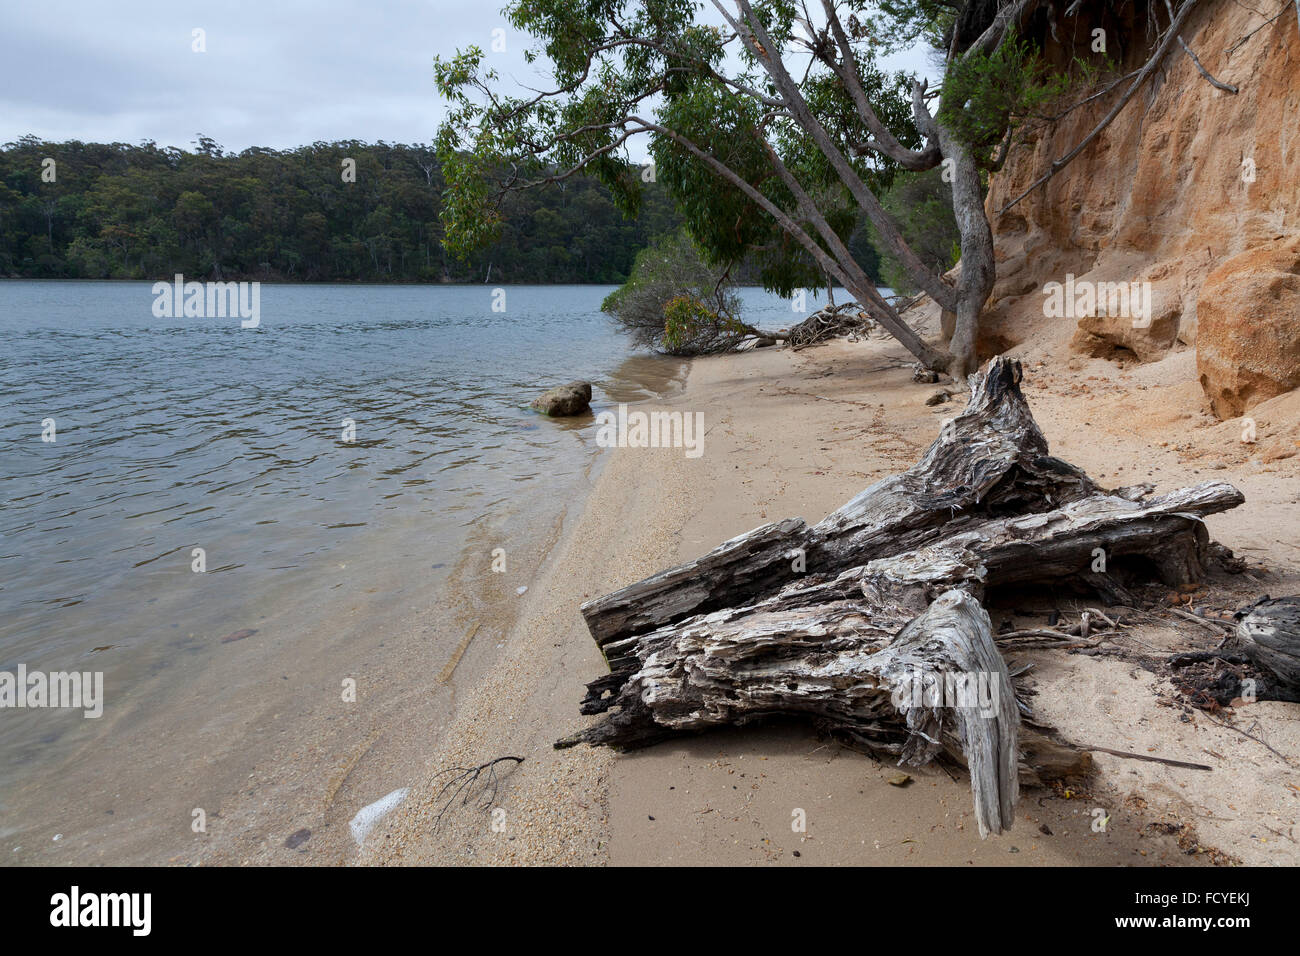 Trunk and trees at the Mallacoota Inlet, Gippsland, Australia - Stock Image